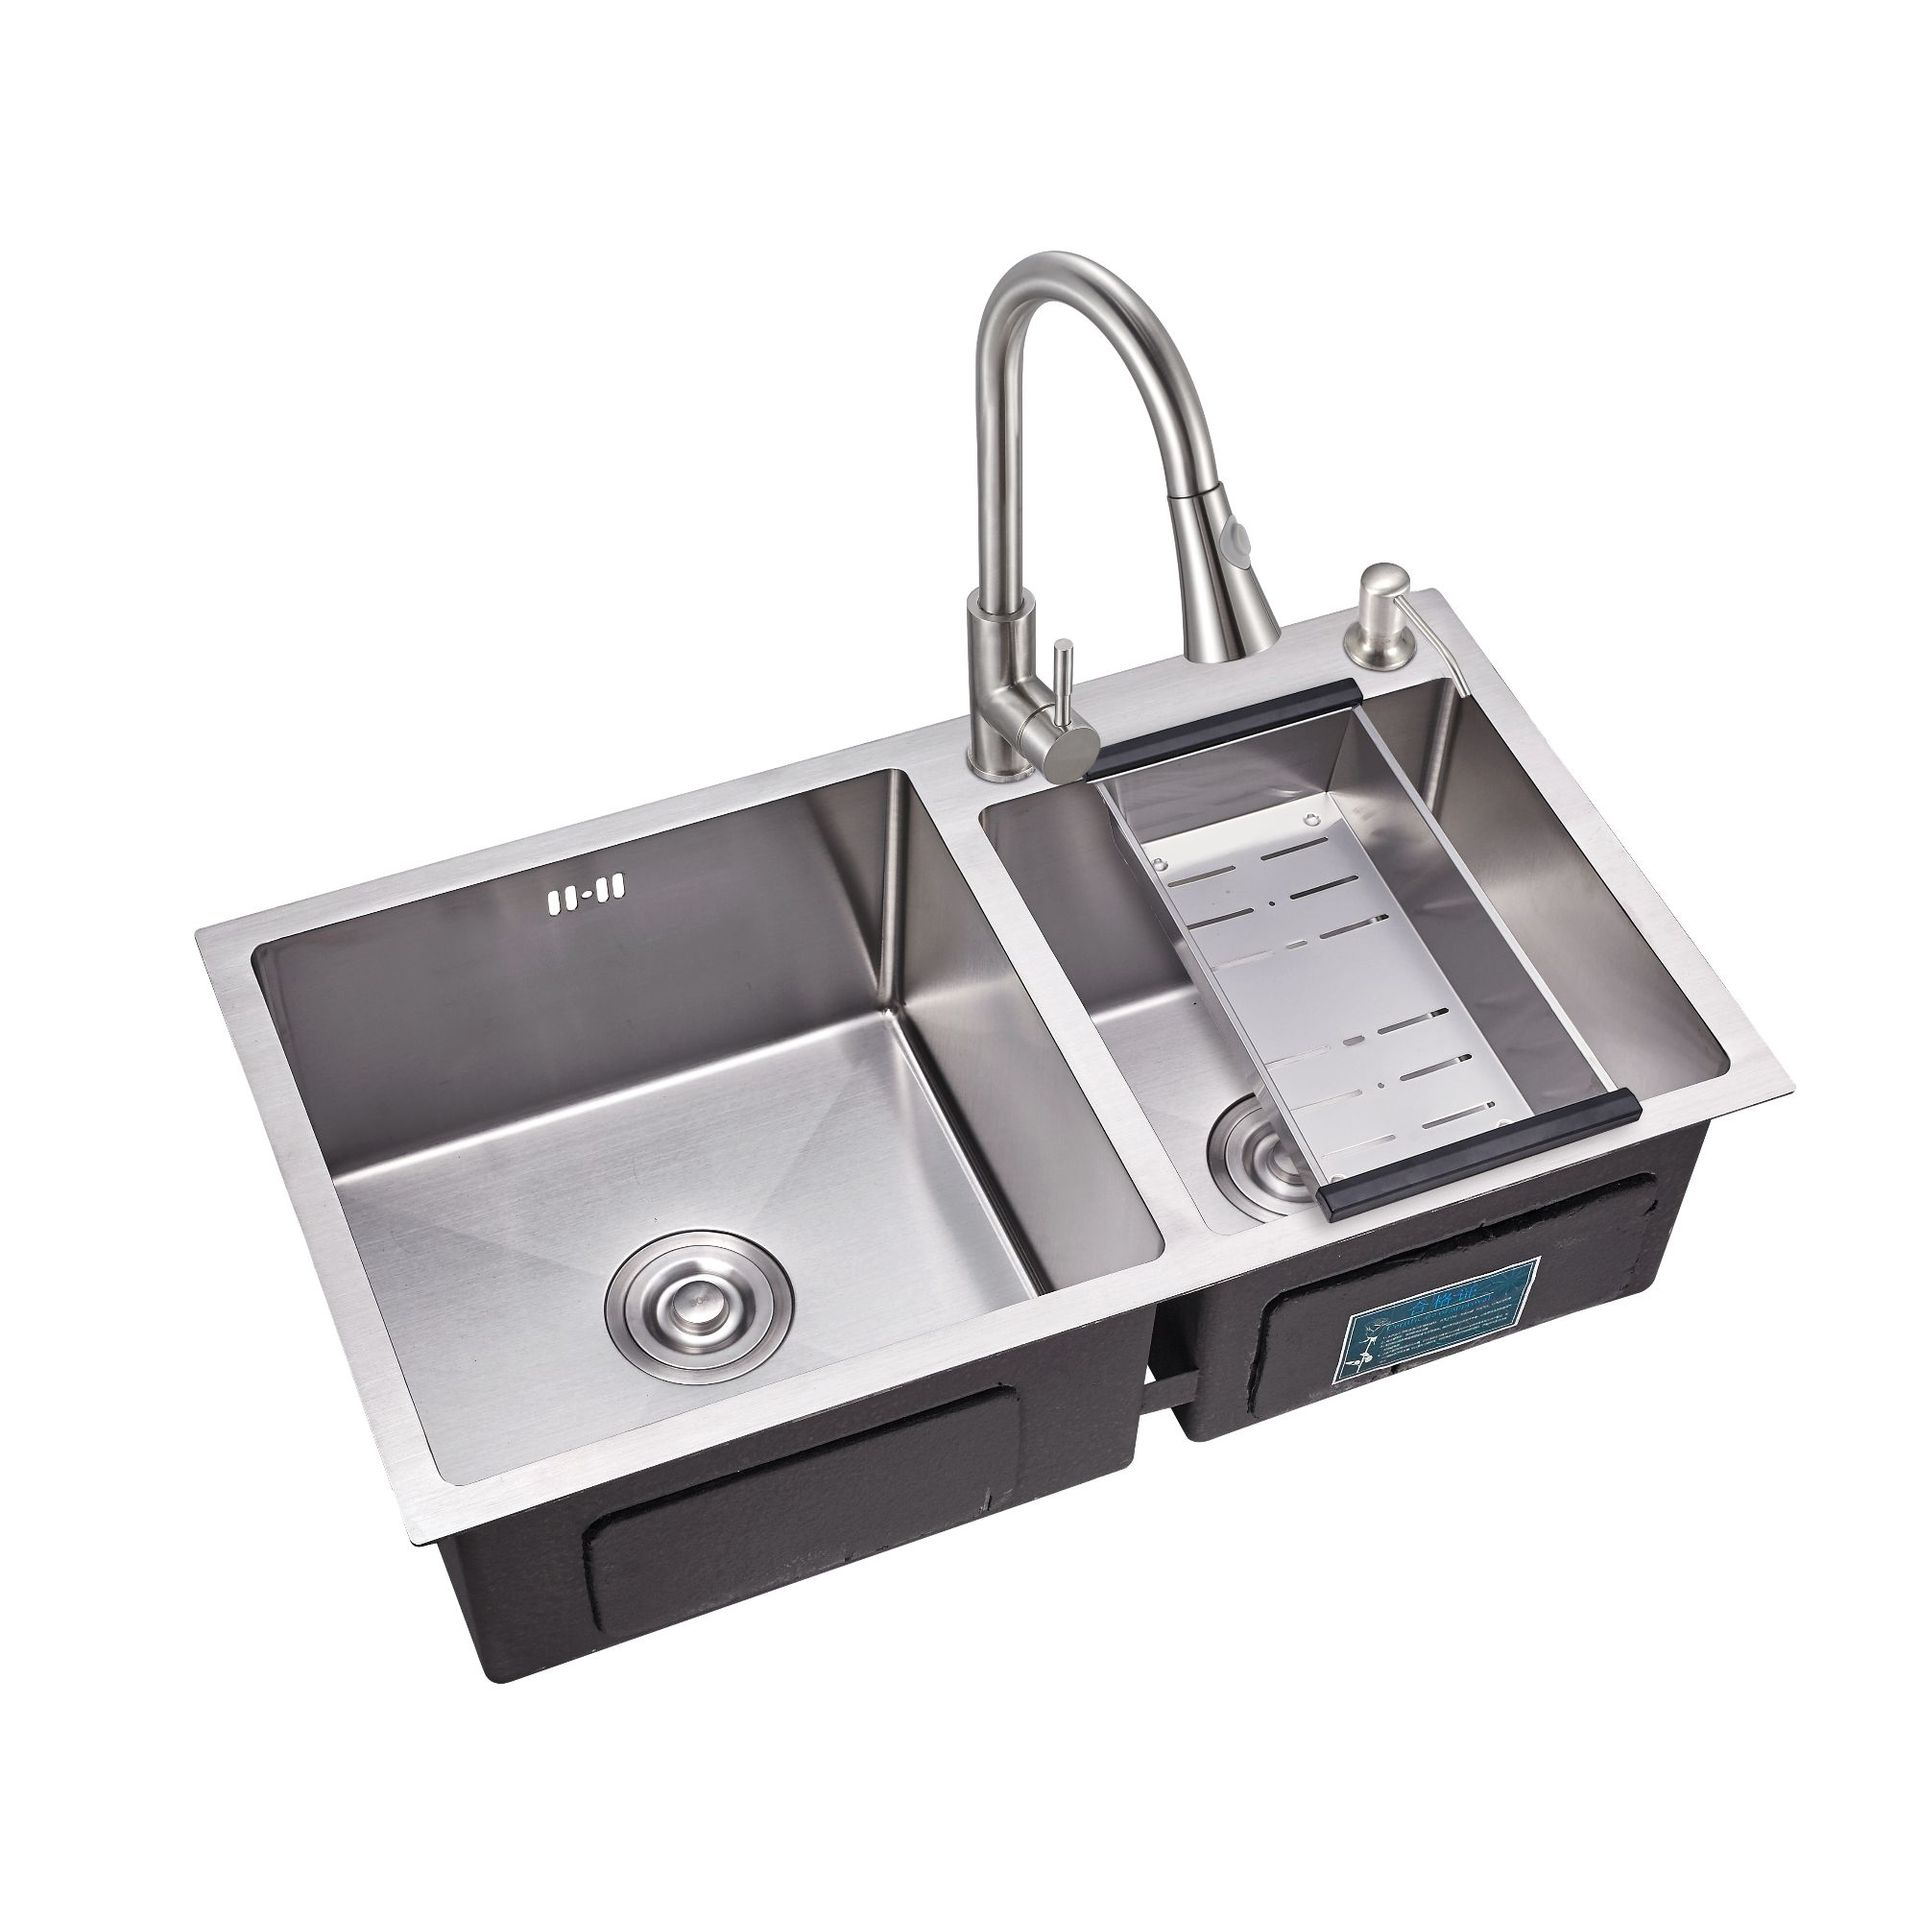 sink the slot thickening 3 mm manual package SUS304 stainless steel kitchen sink  basins bouble bowl  kitchen sink with faucet